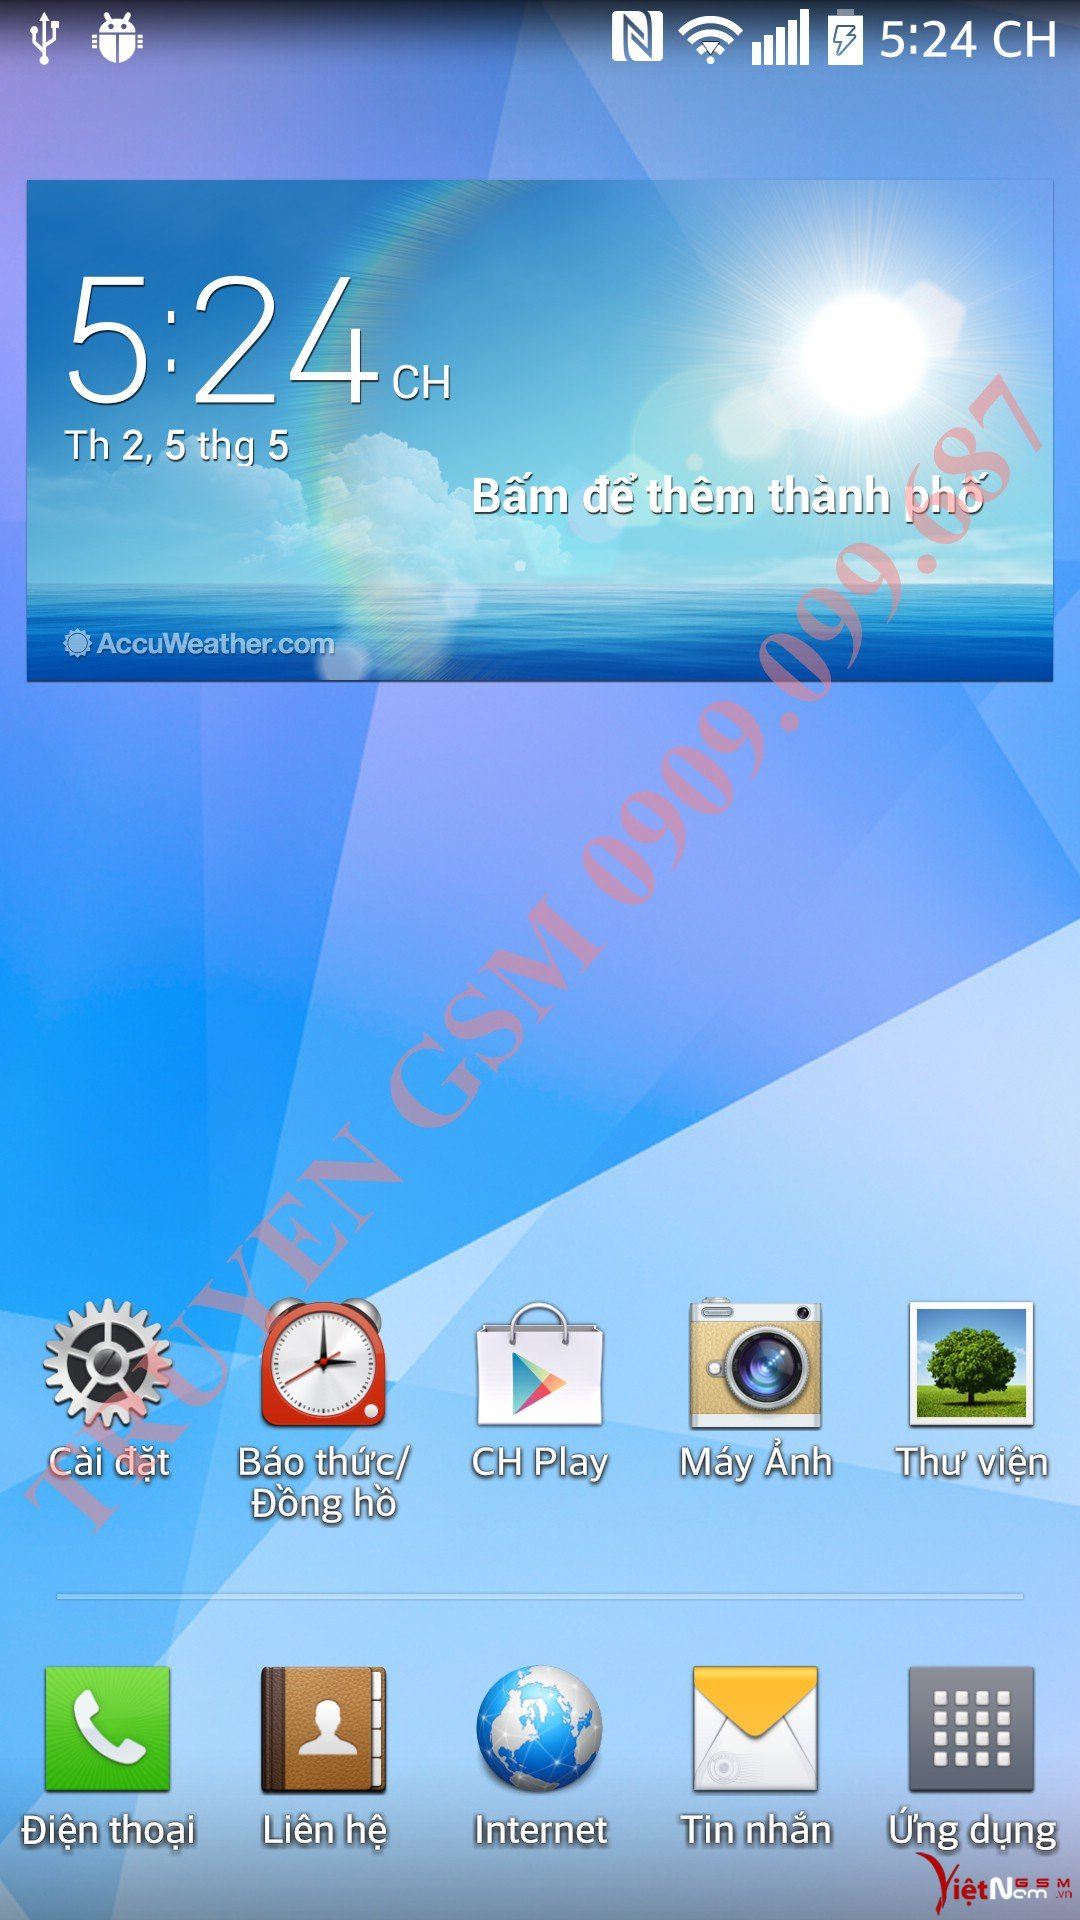 Screenshot_2014-05-05-17-24-20.jpg